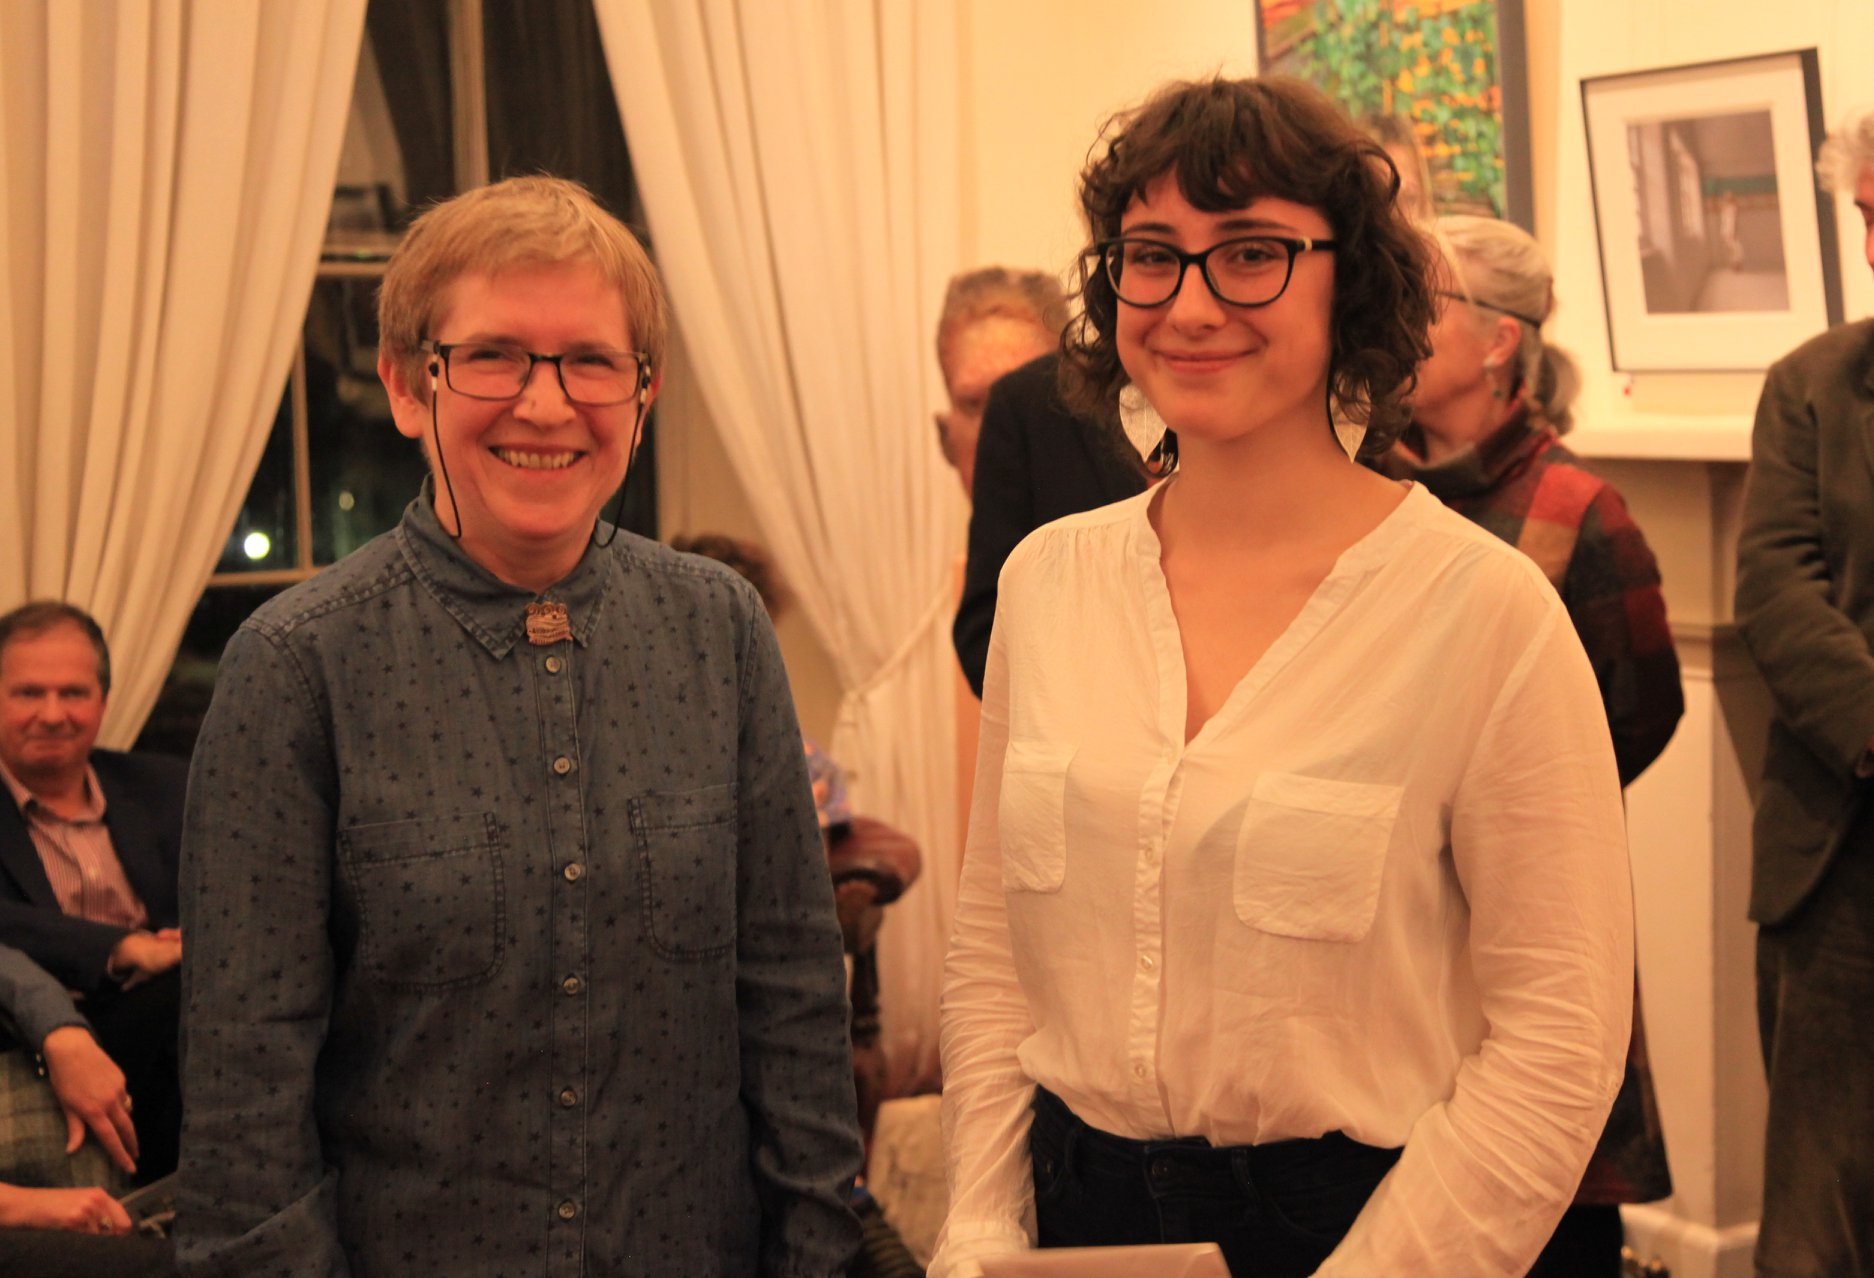 Winner of the SPA Young Fine Artist, Eve Woehrling (right) with Helen Wilson, winner of the 2017 SPA in Fine Art.